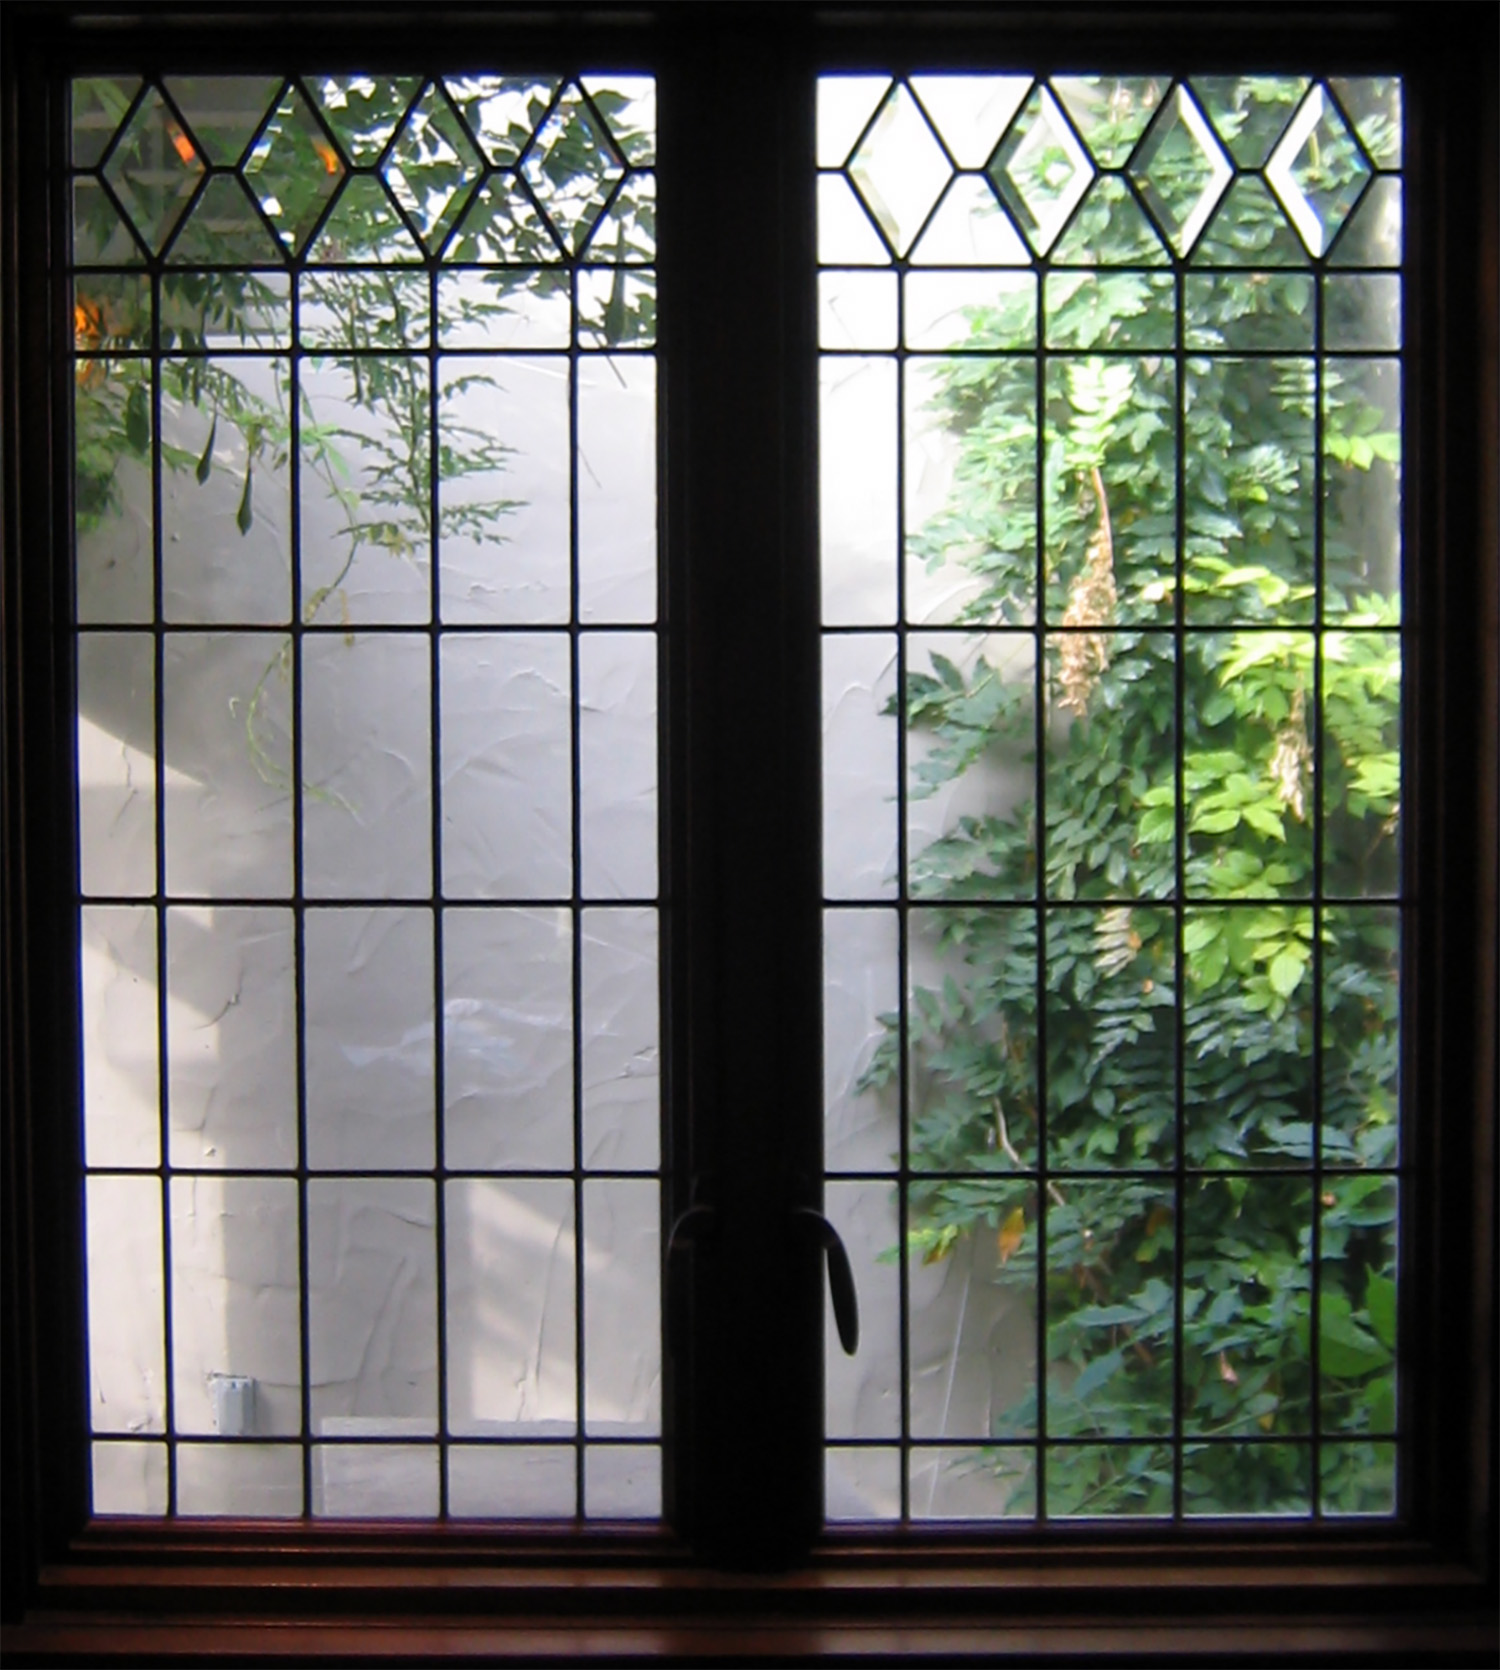 traditional diamond leaded glass stained glass studio palo alto atherton california san francisco san jose legacy glass.jpg